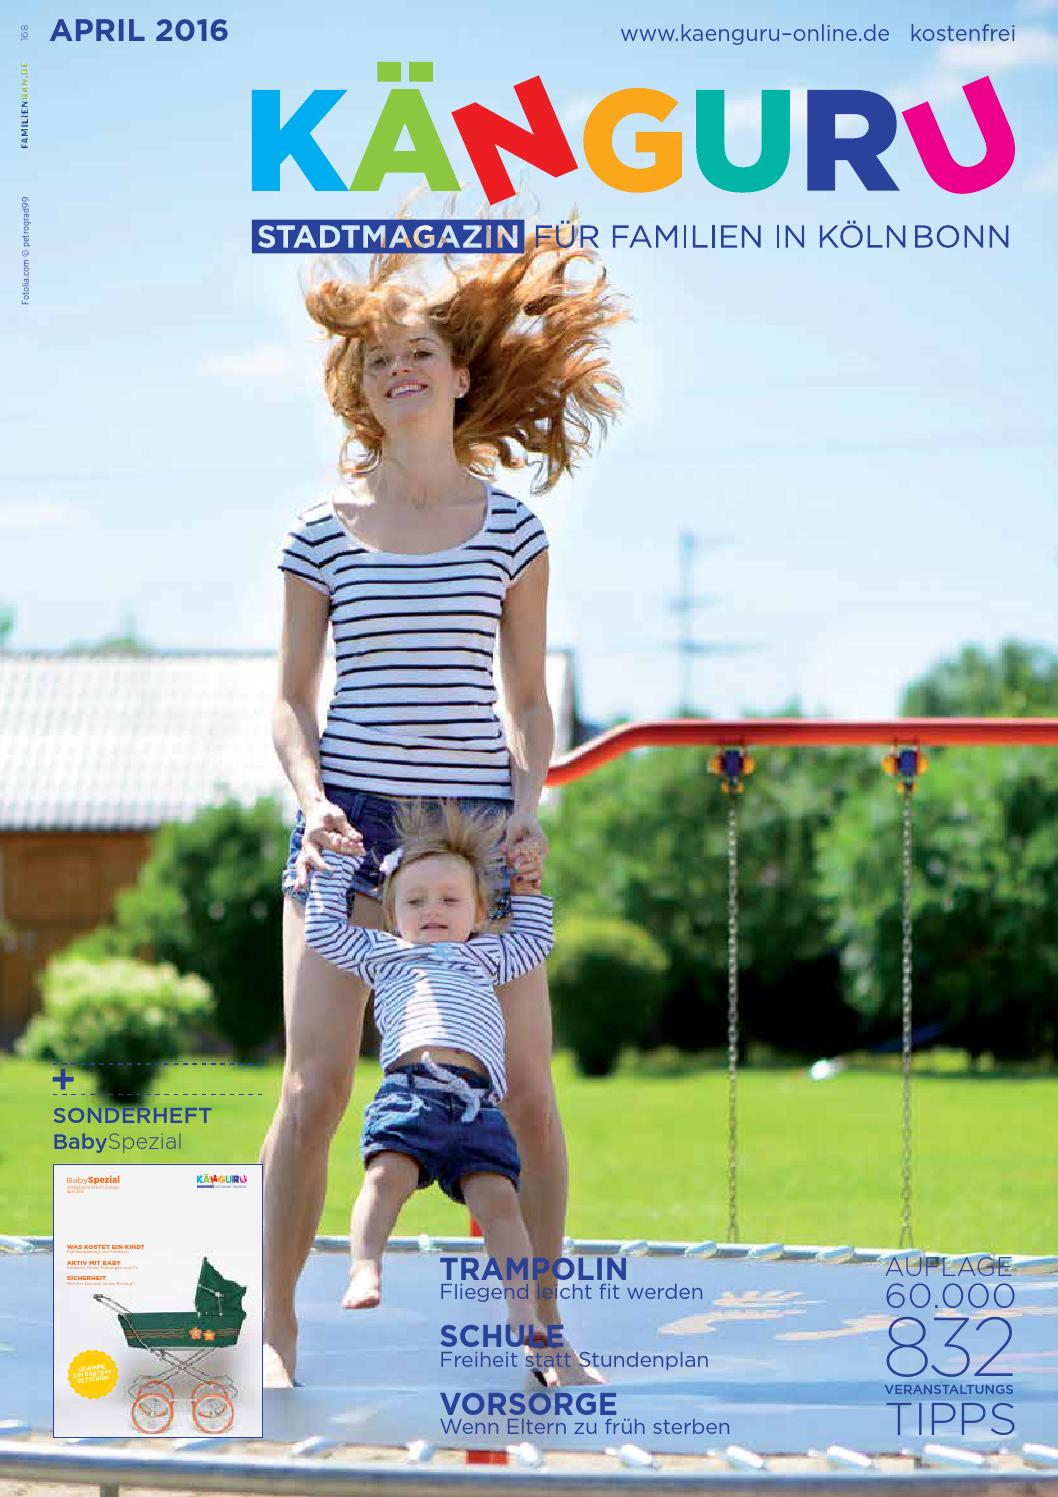 Kanguru Stadtmagazin Fur Familien In Kolnbonn April 2016 By